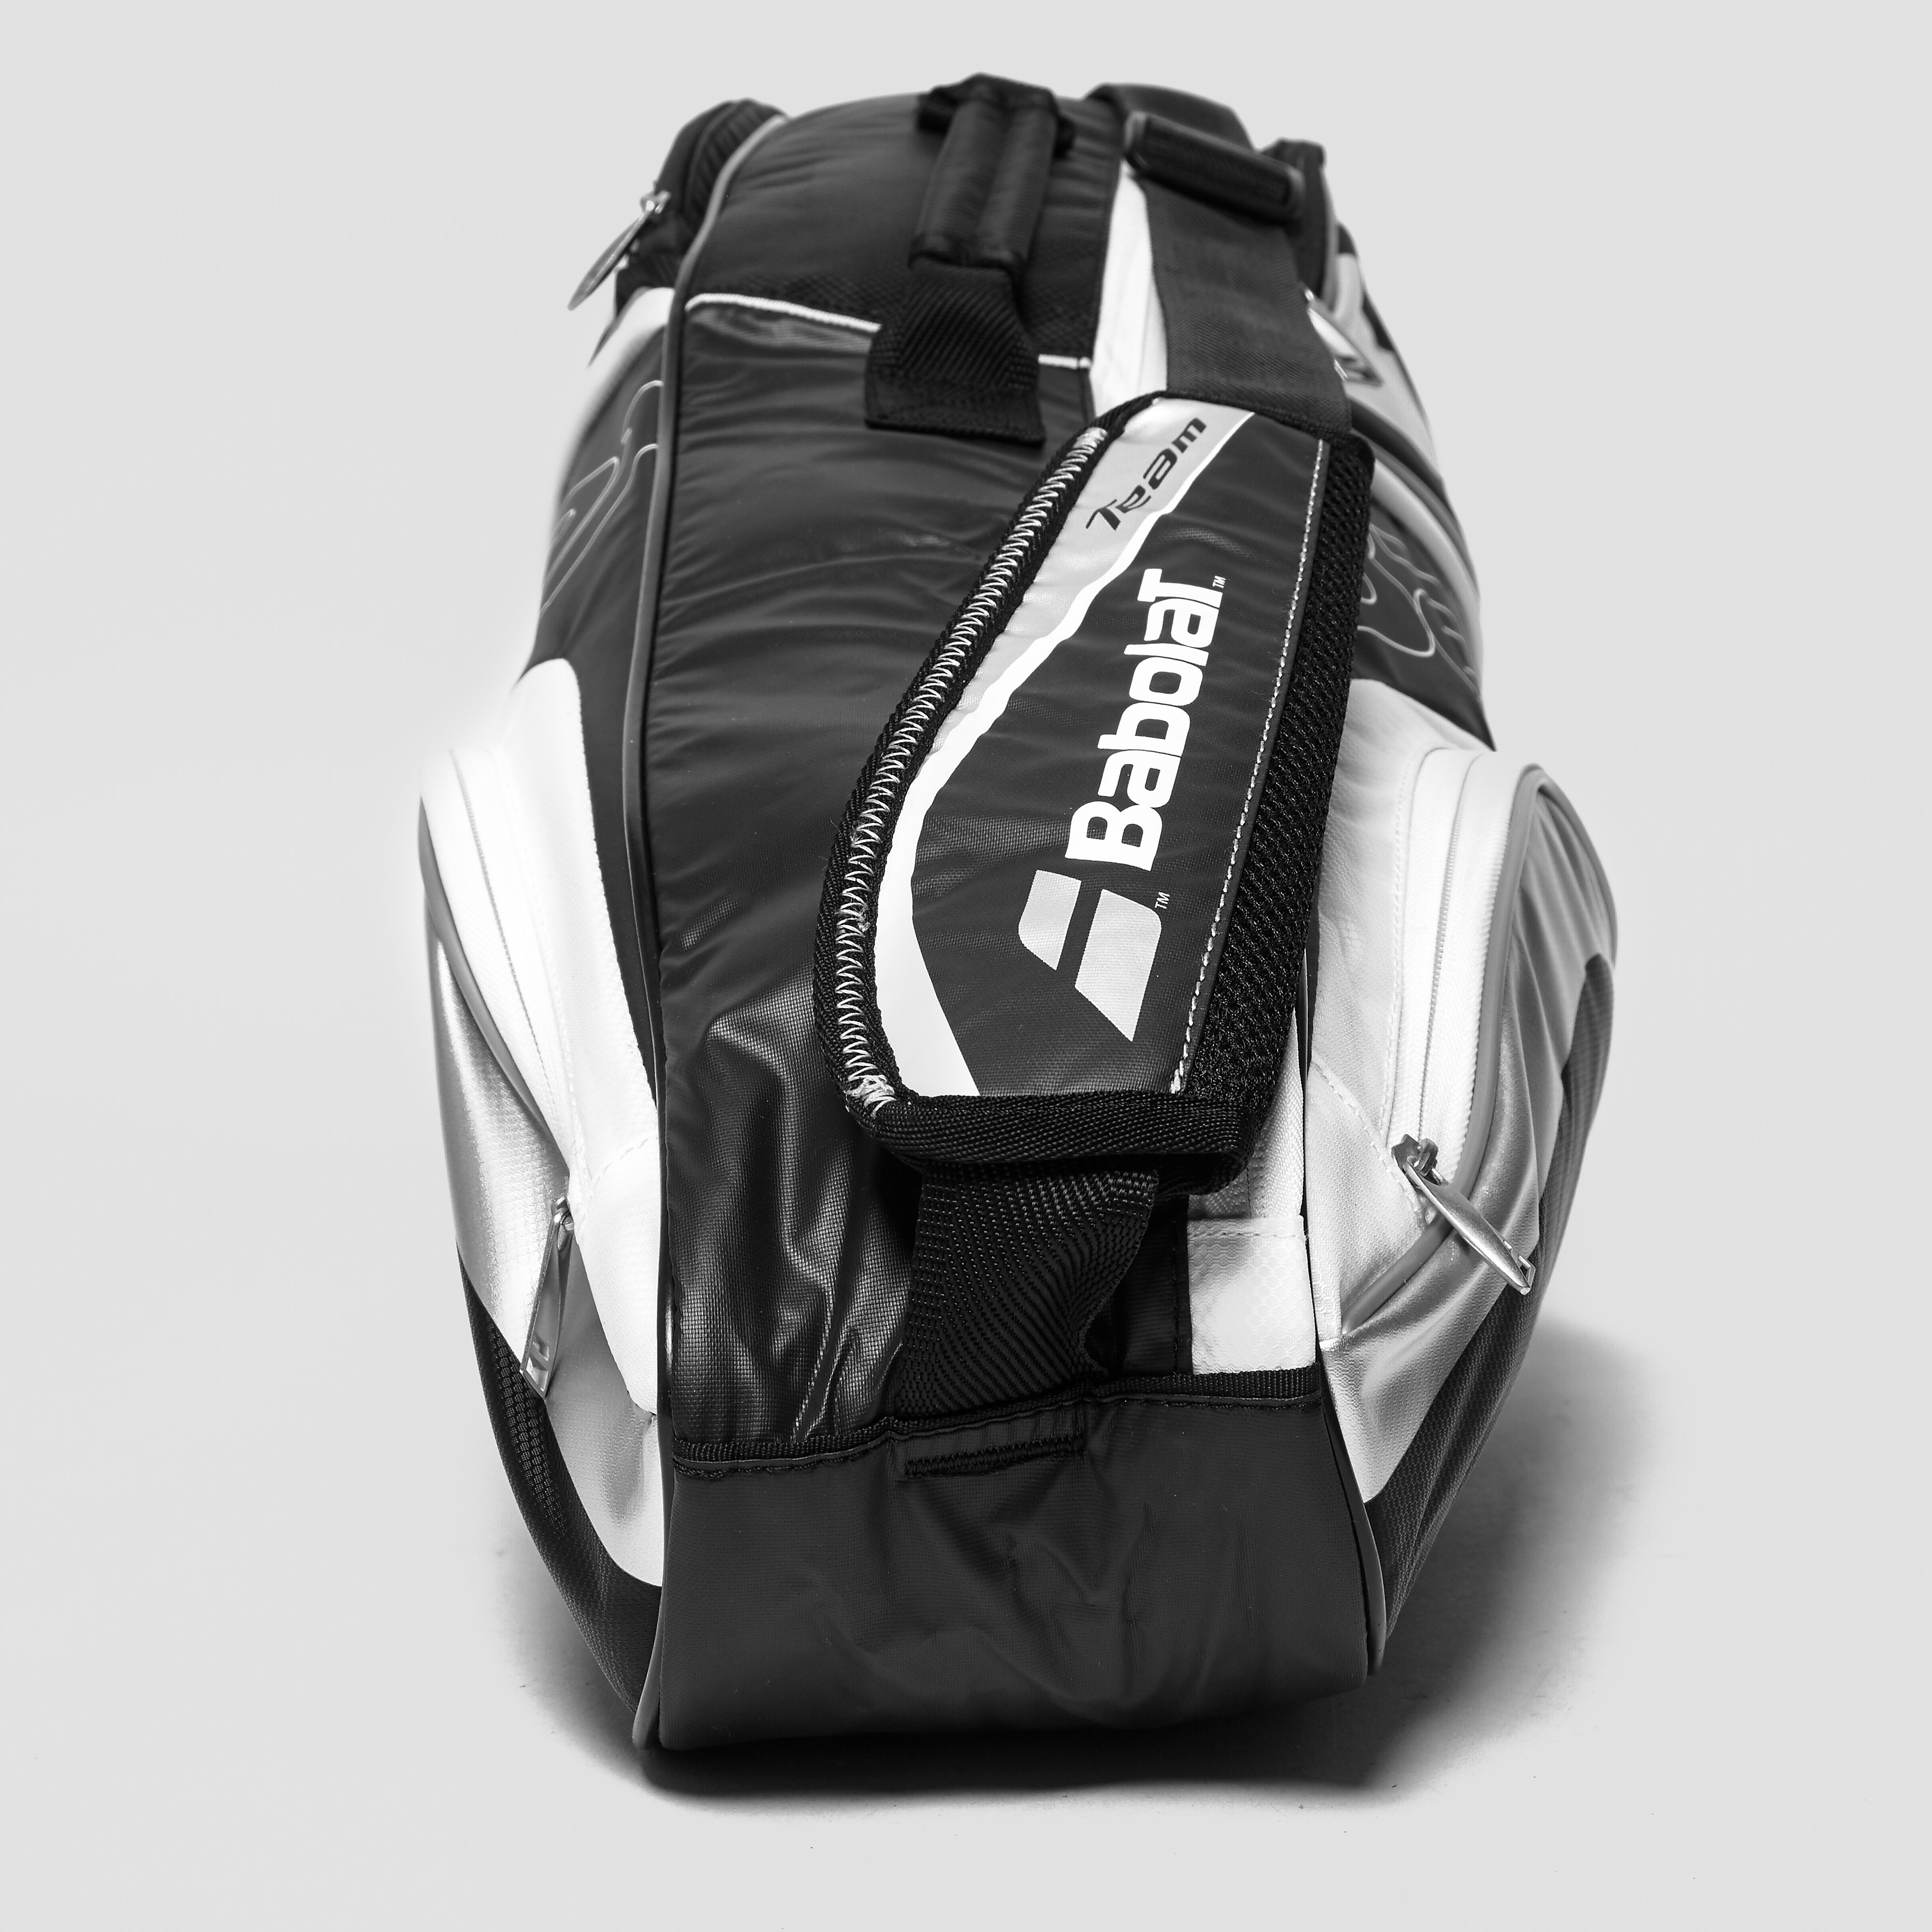 Babolat Racket Holder Team x3